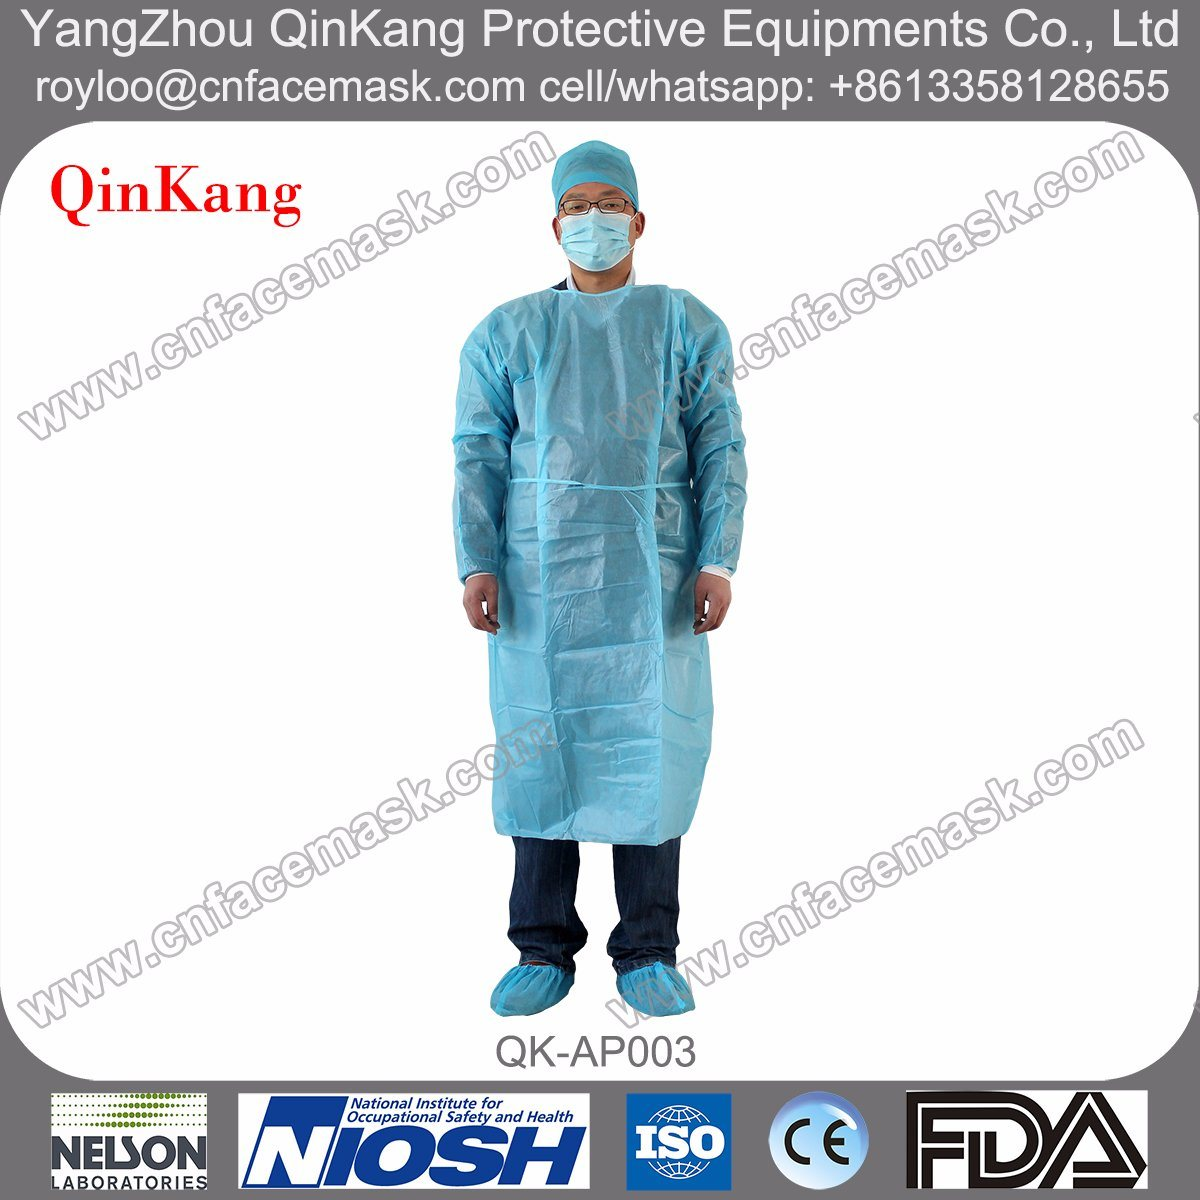 SMS Fabric Fluid-Repellent Medical Disposable Surgical Gown